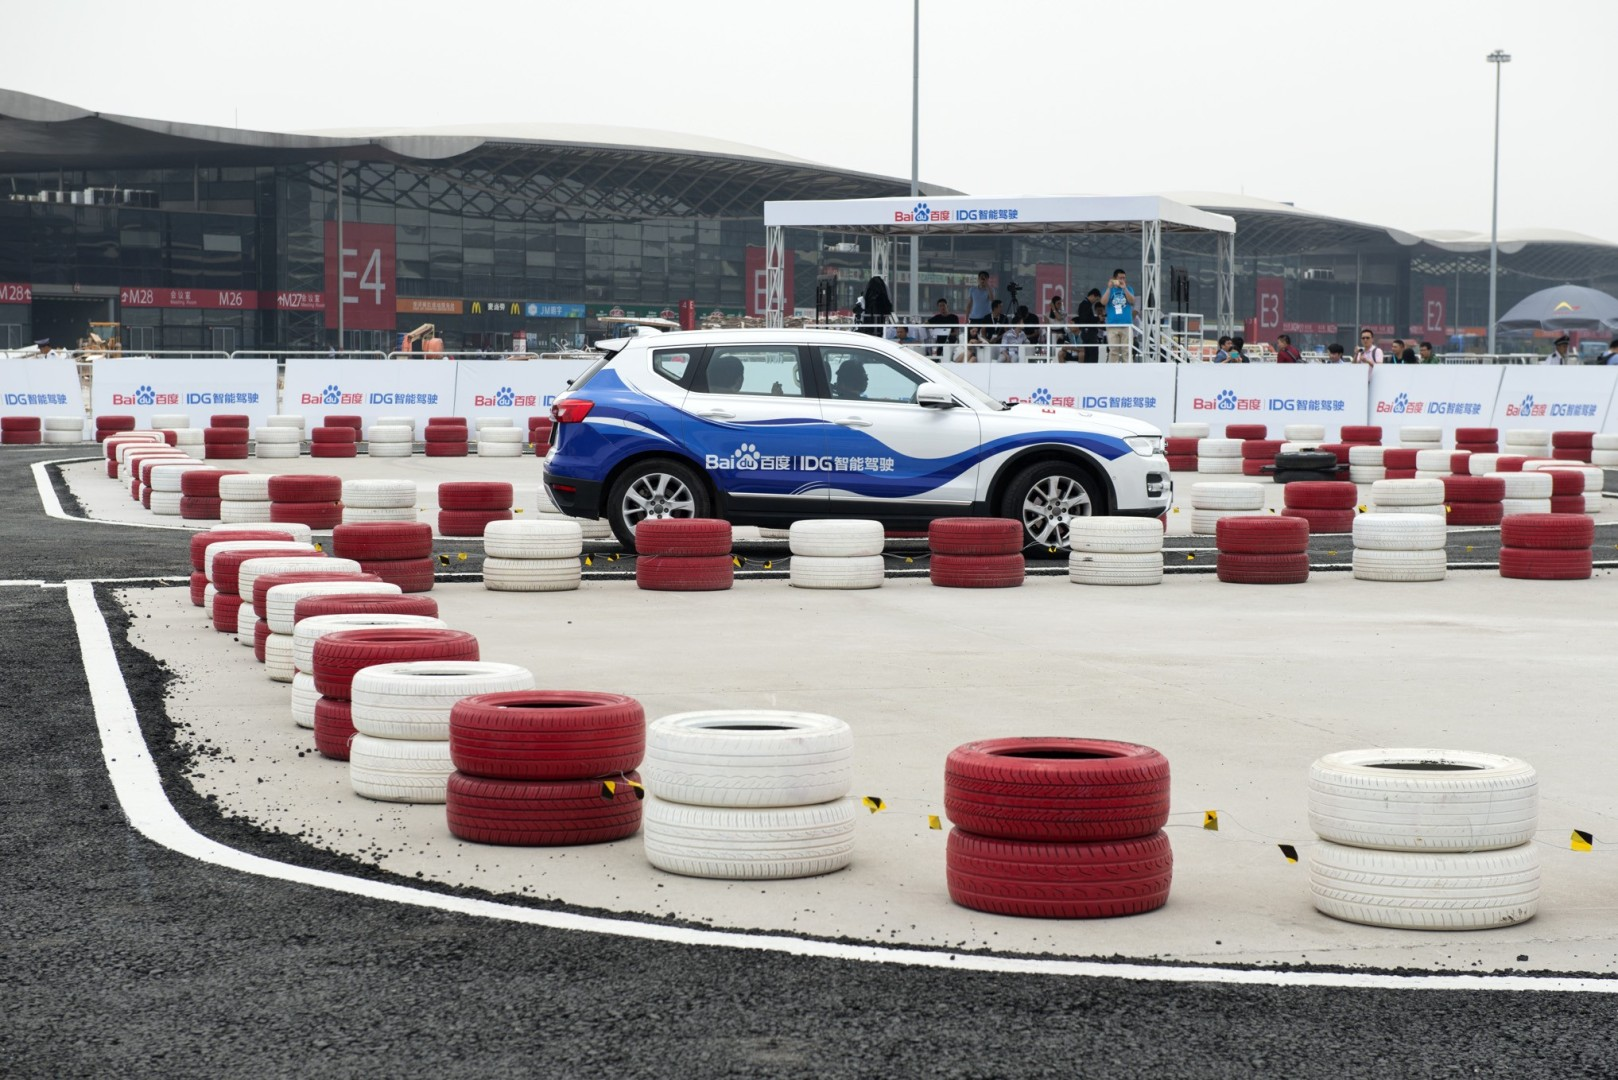 China's self-driving vehicles on track to take global